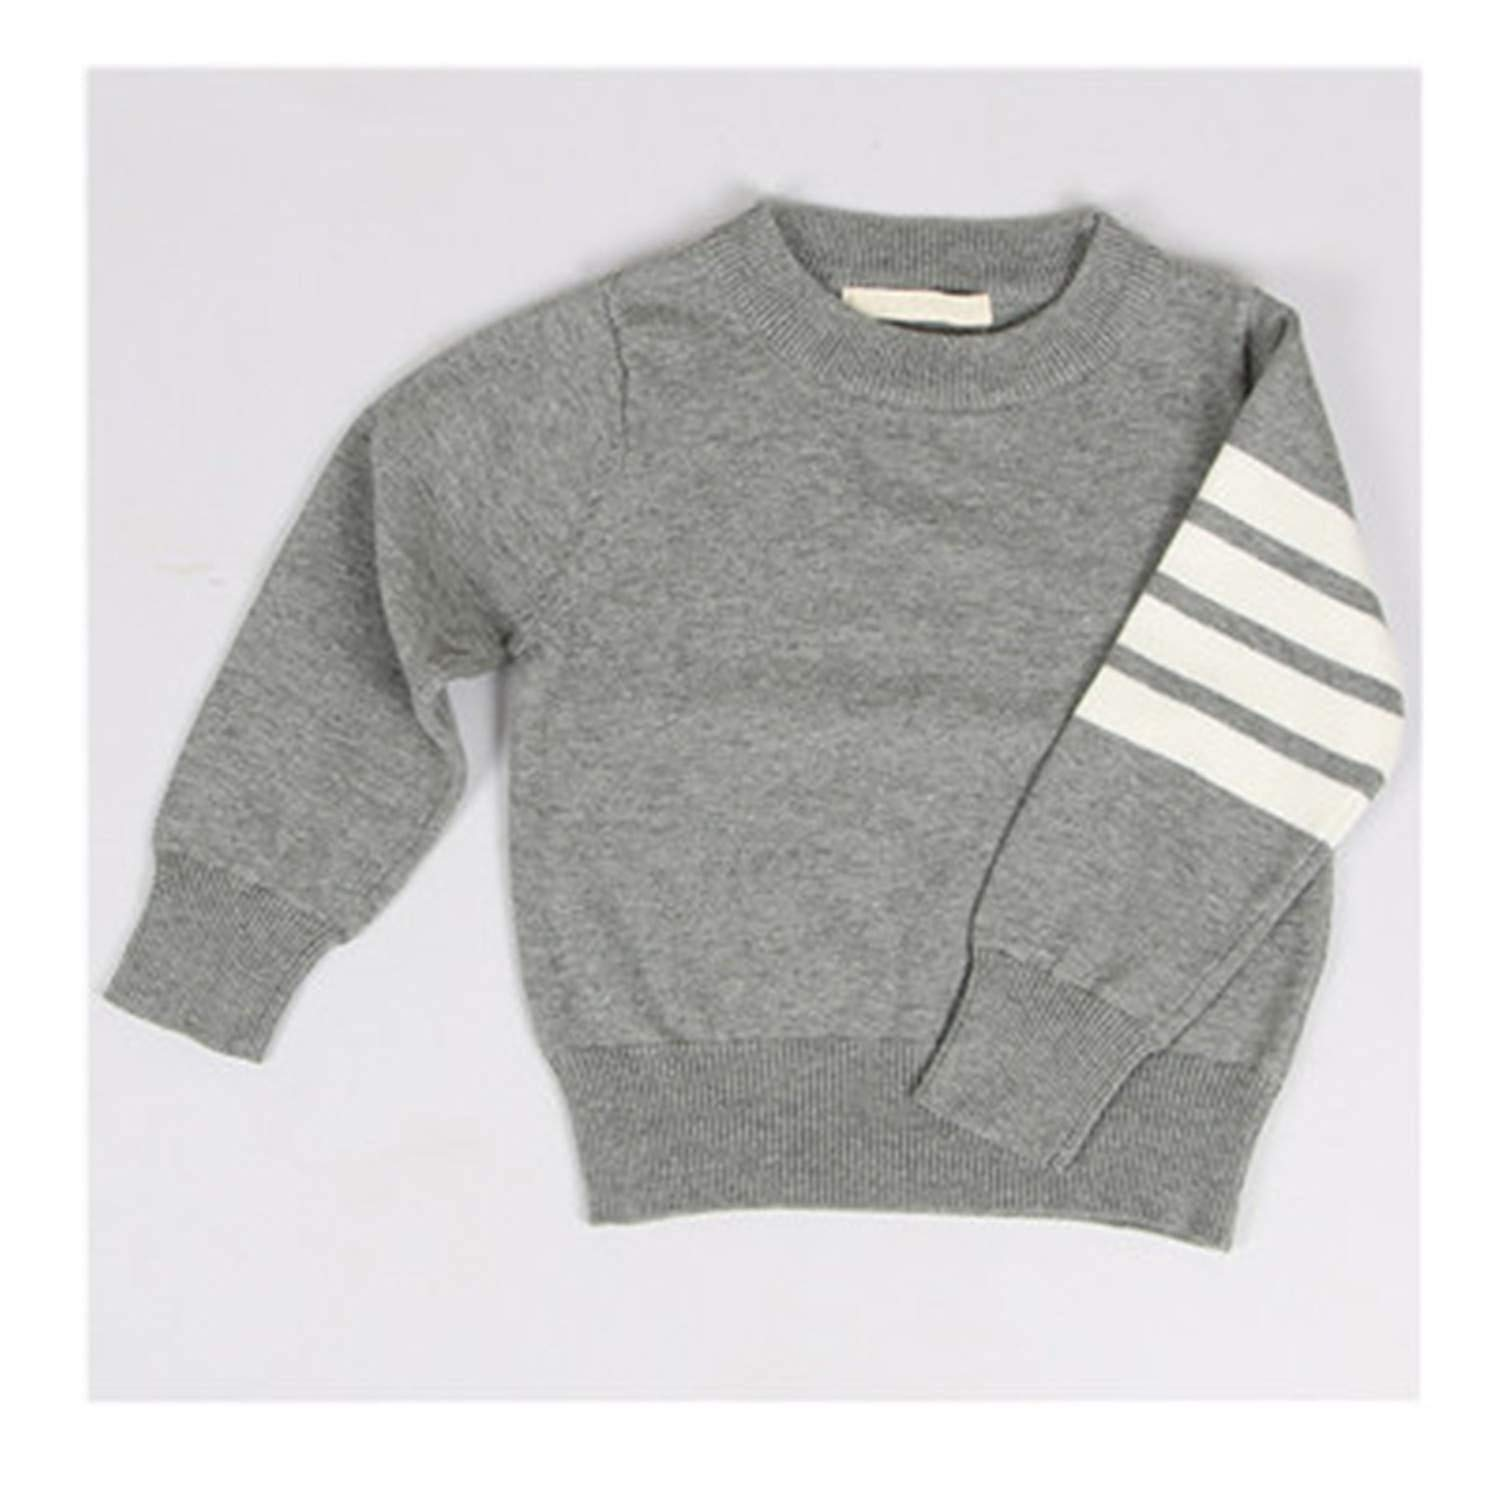 db2ea7985 New Solid Toddler Boy Sweater Pullover Long Sleeve Knit Outerwear Kids  Clothing